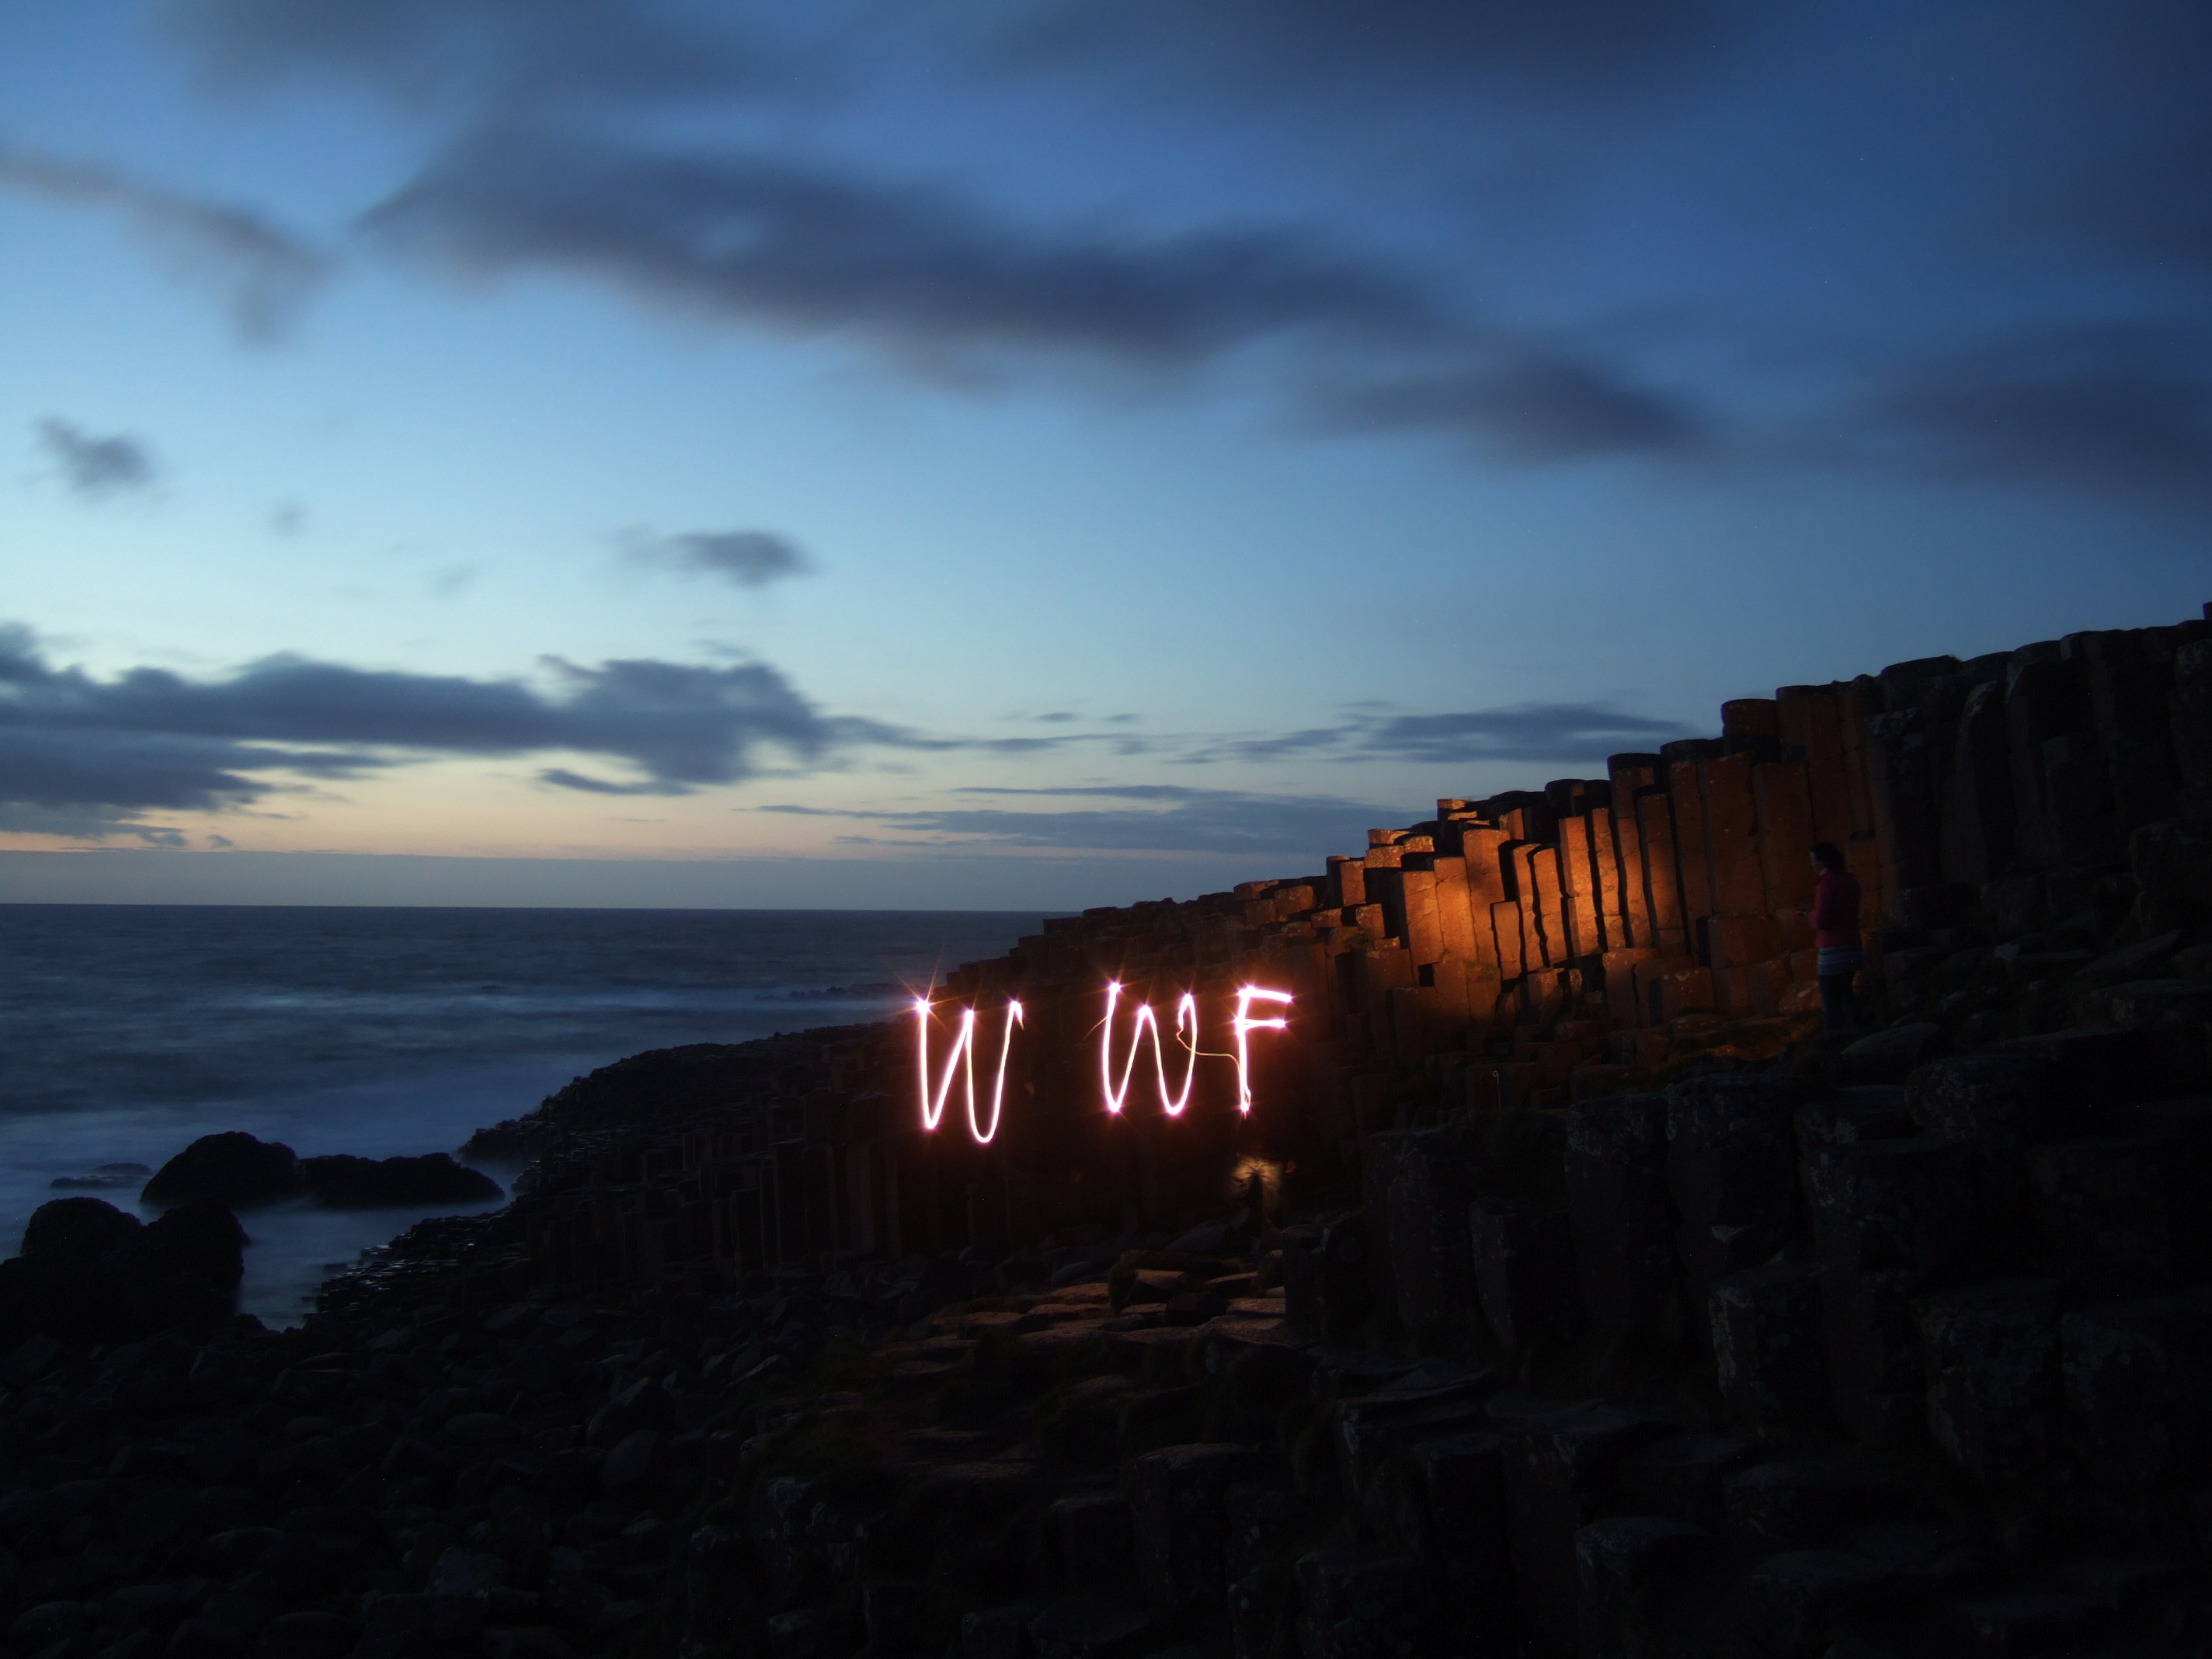 Earth Hour at Giant's Causeway - Image - Wild Life - WWF